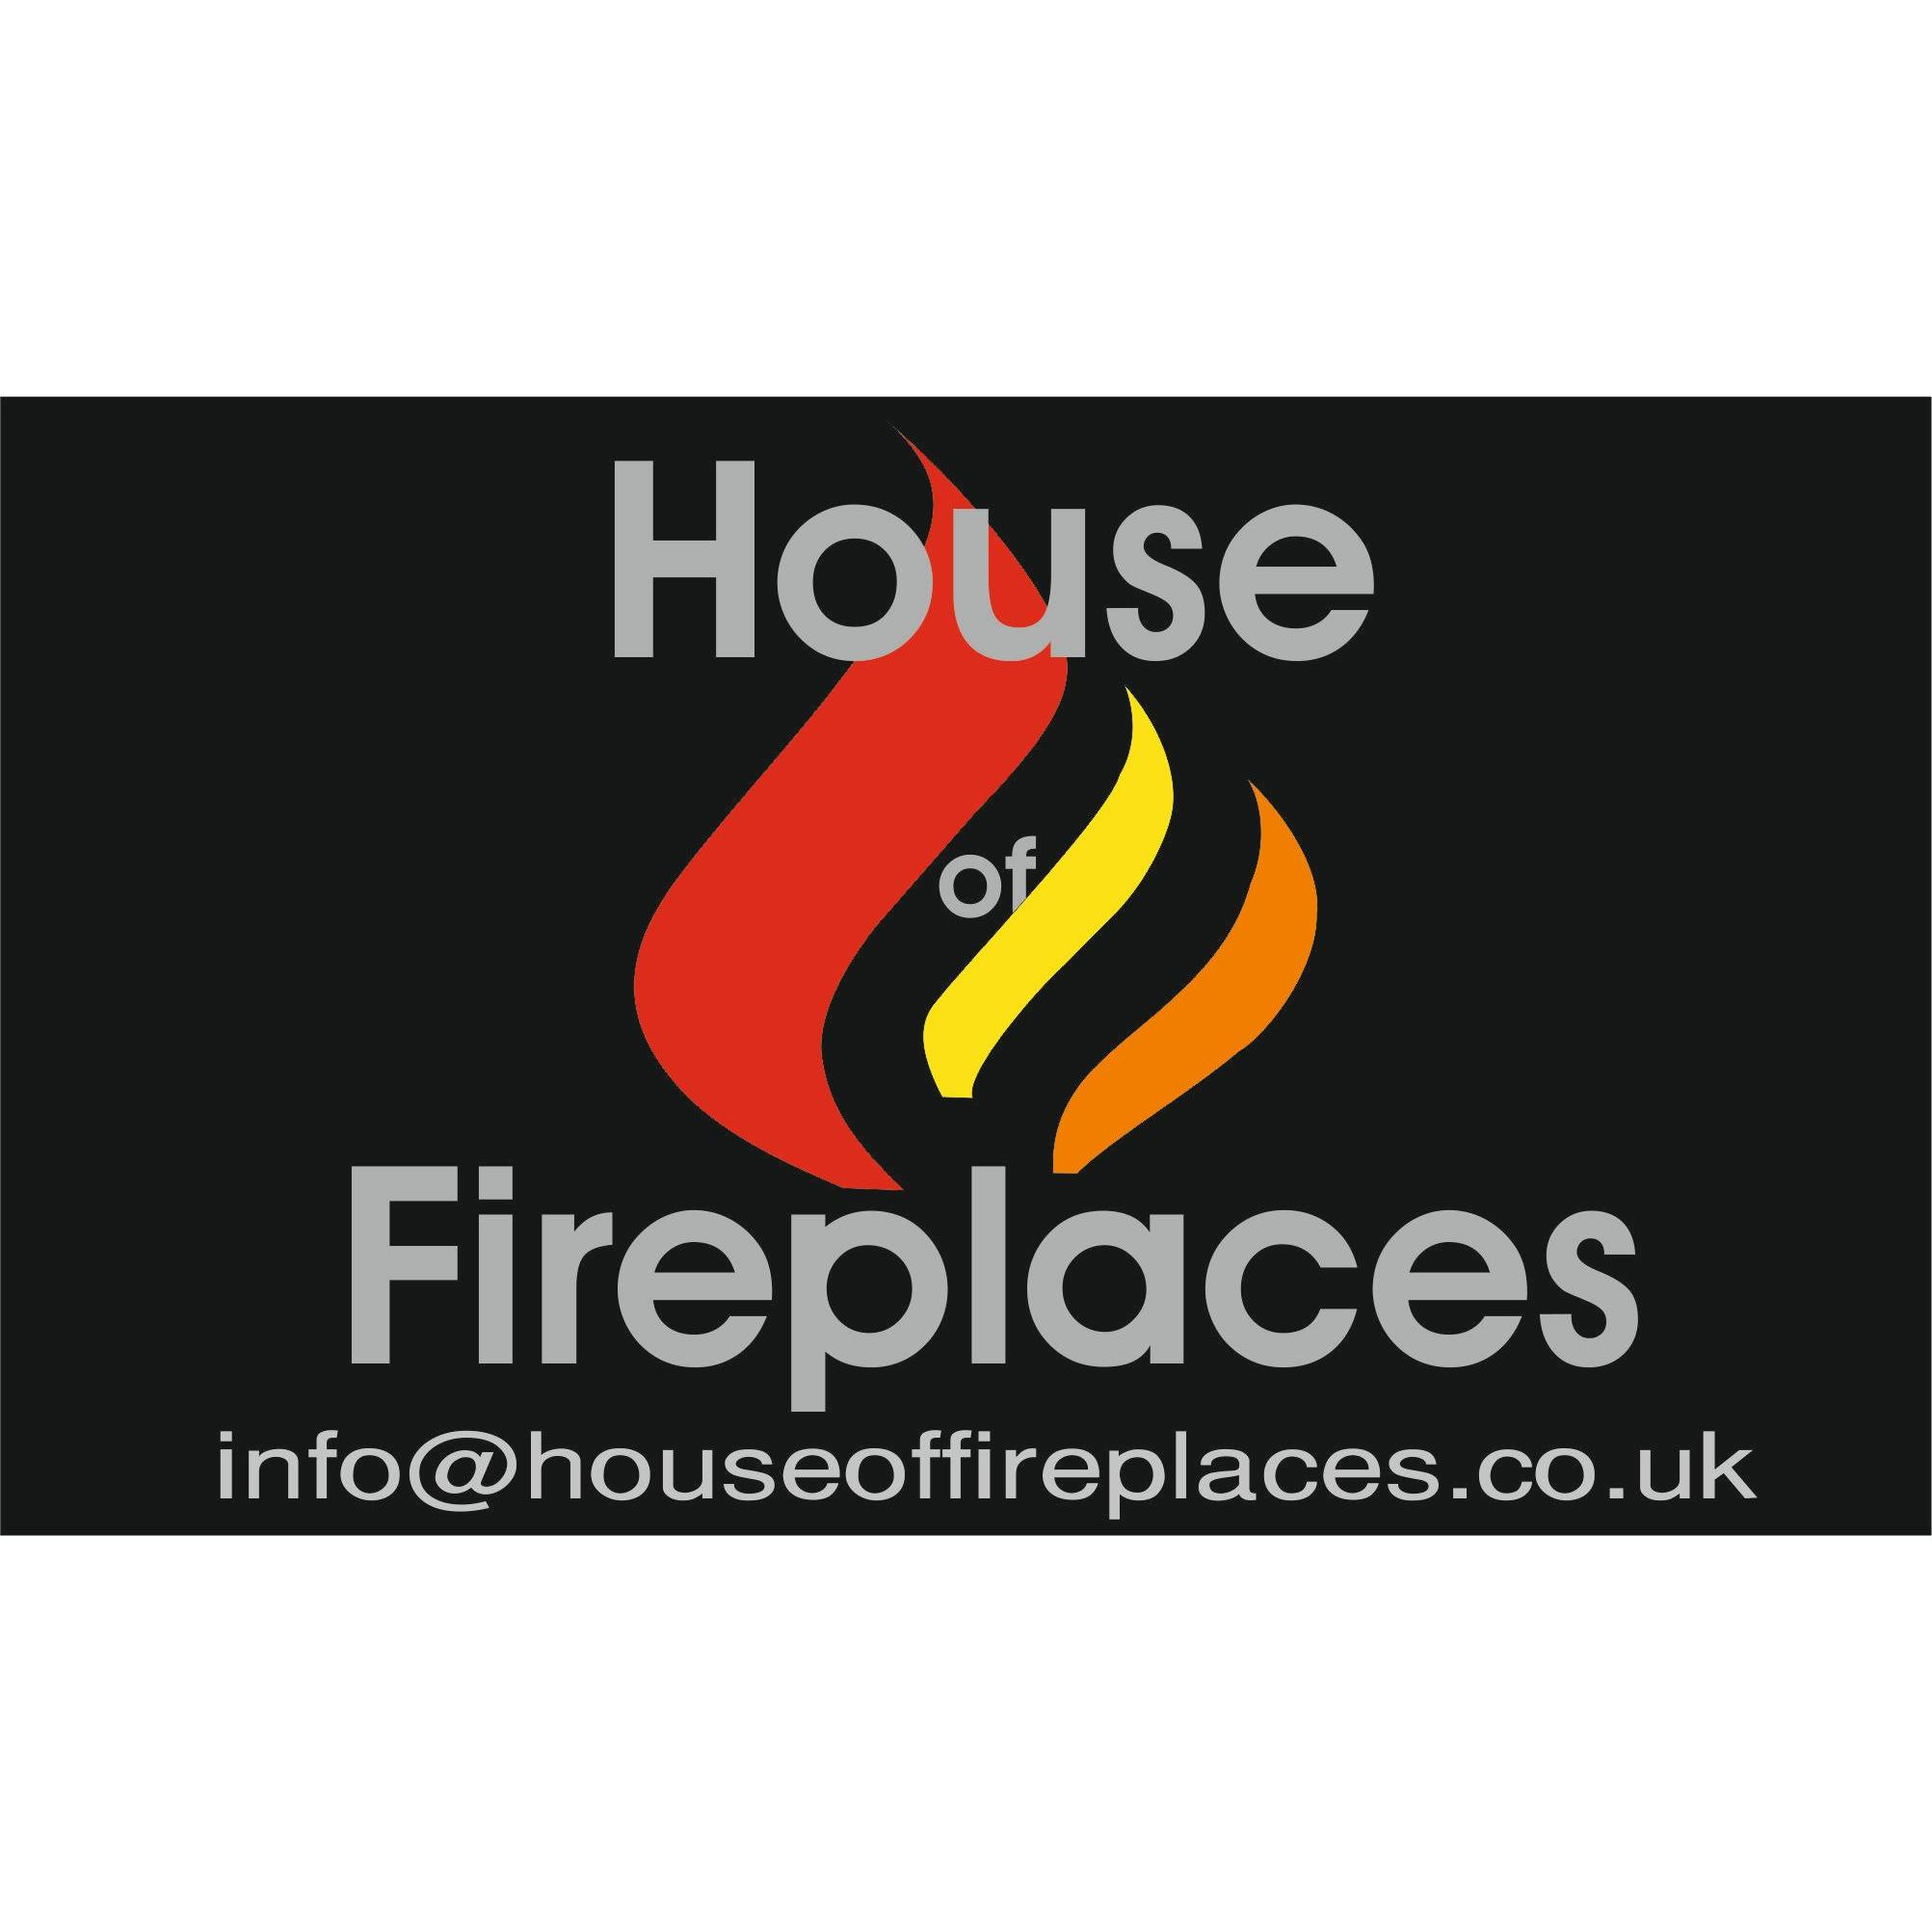 House of Fireplaces - Craigavon, County Armagh BT62 3JQ - 02838 392277 | ShowMeLocal.com